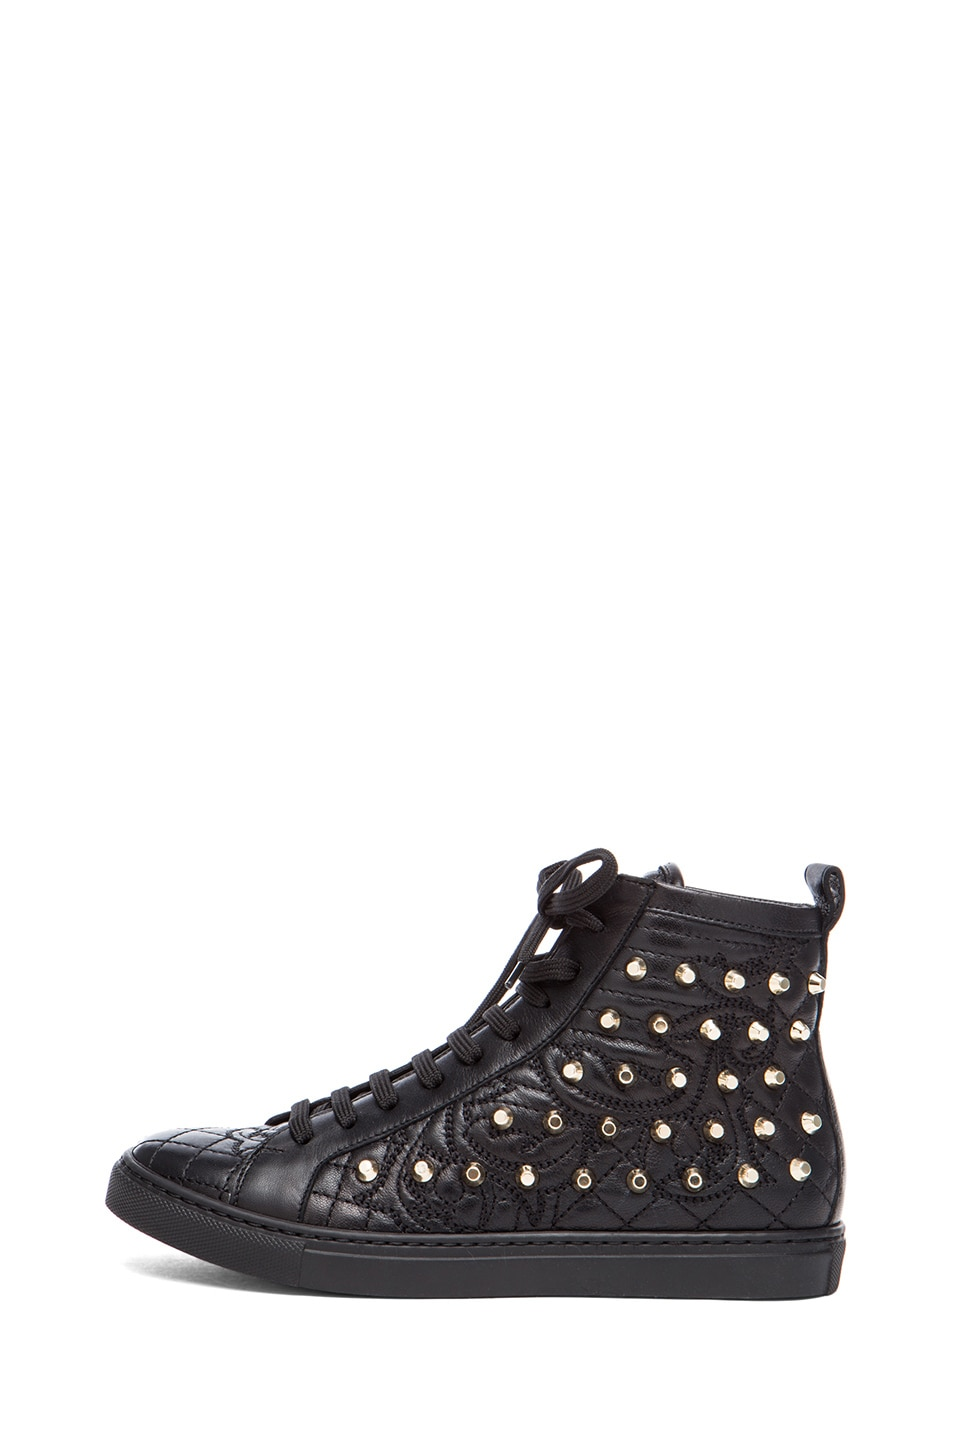 Image 1 of VERSACE Nappa Leather Studded Sneaker in Black & Gold